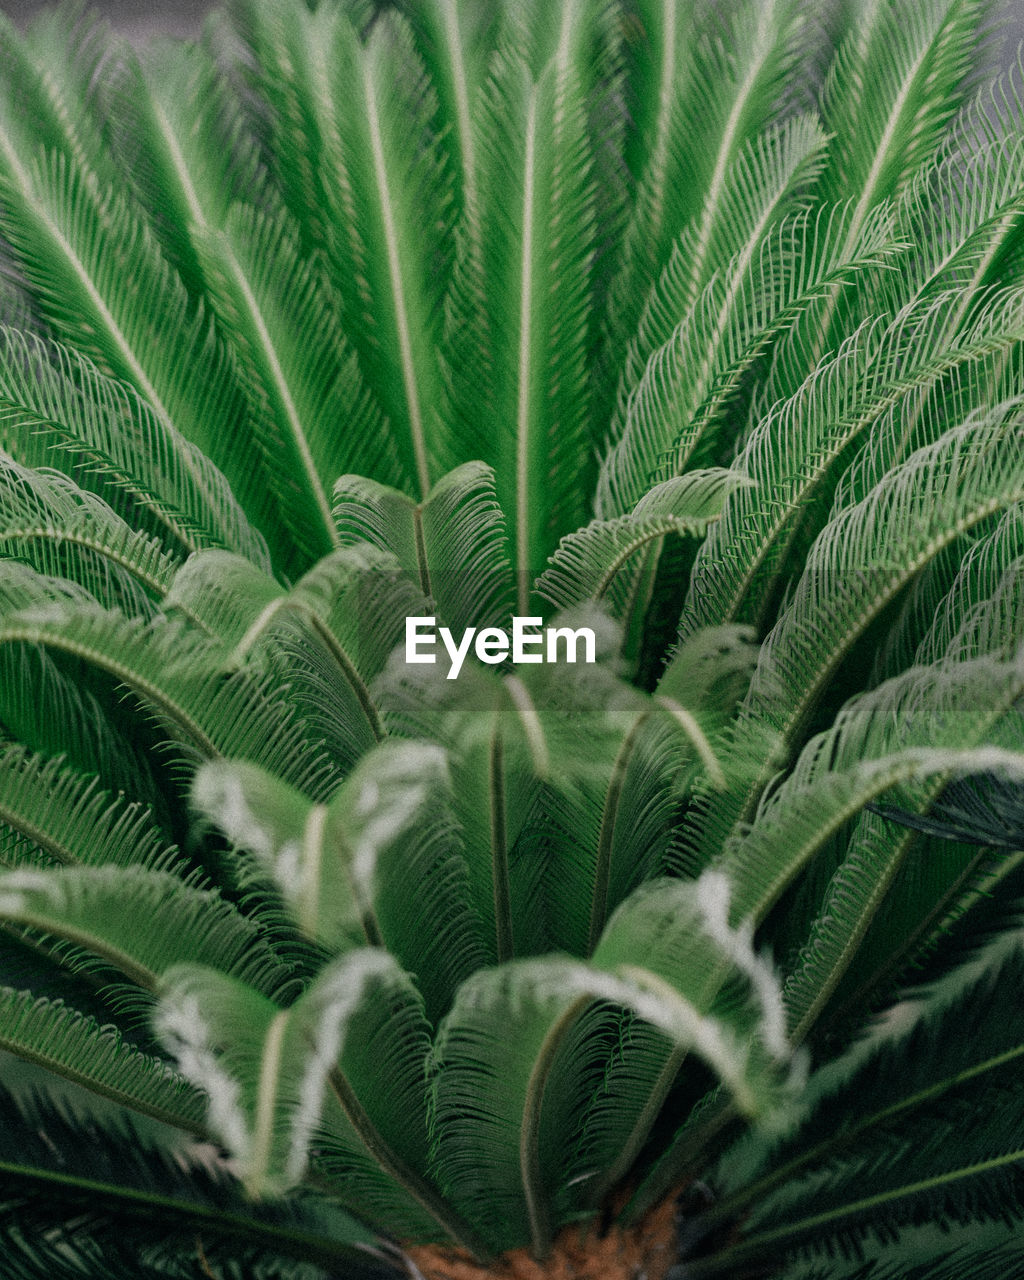 leaf, plant part, growth, plant, green color, nature, no people, palm tree, palm leaf, frond, beauty in nature, close-up, backgrounds, tropical climate, fern, full frame, day, outdoors, tree, environment, rainforest, tropical tree